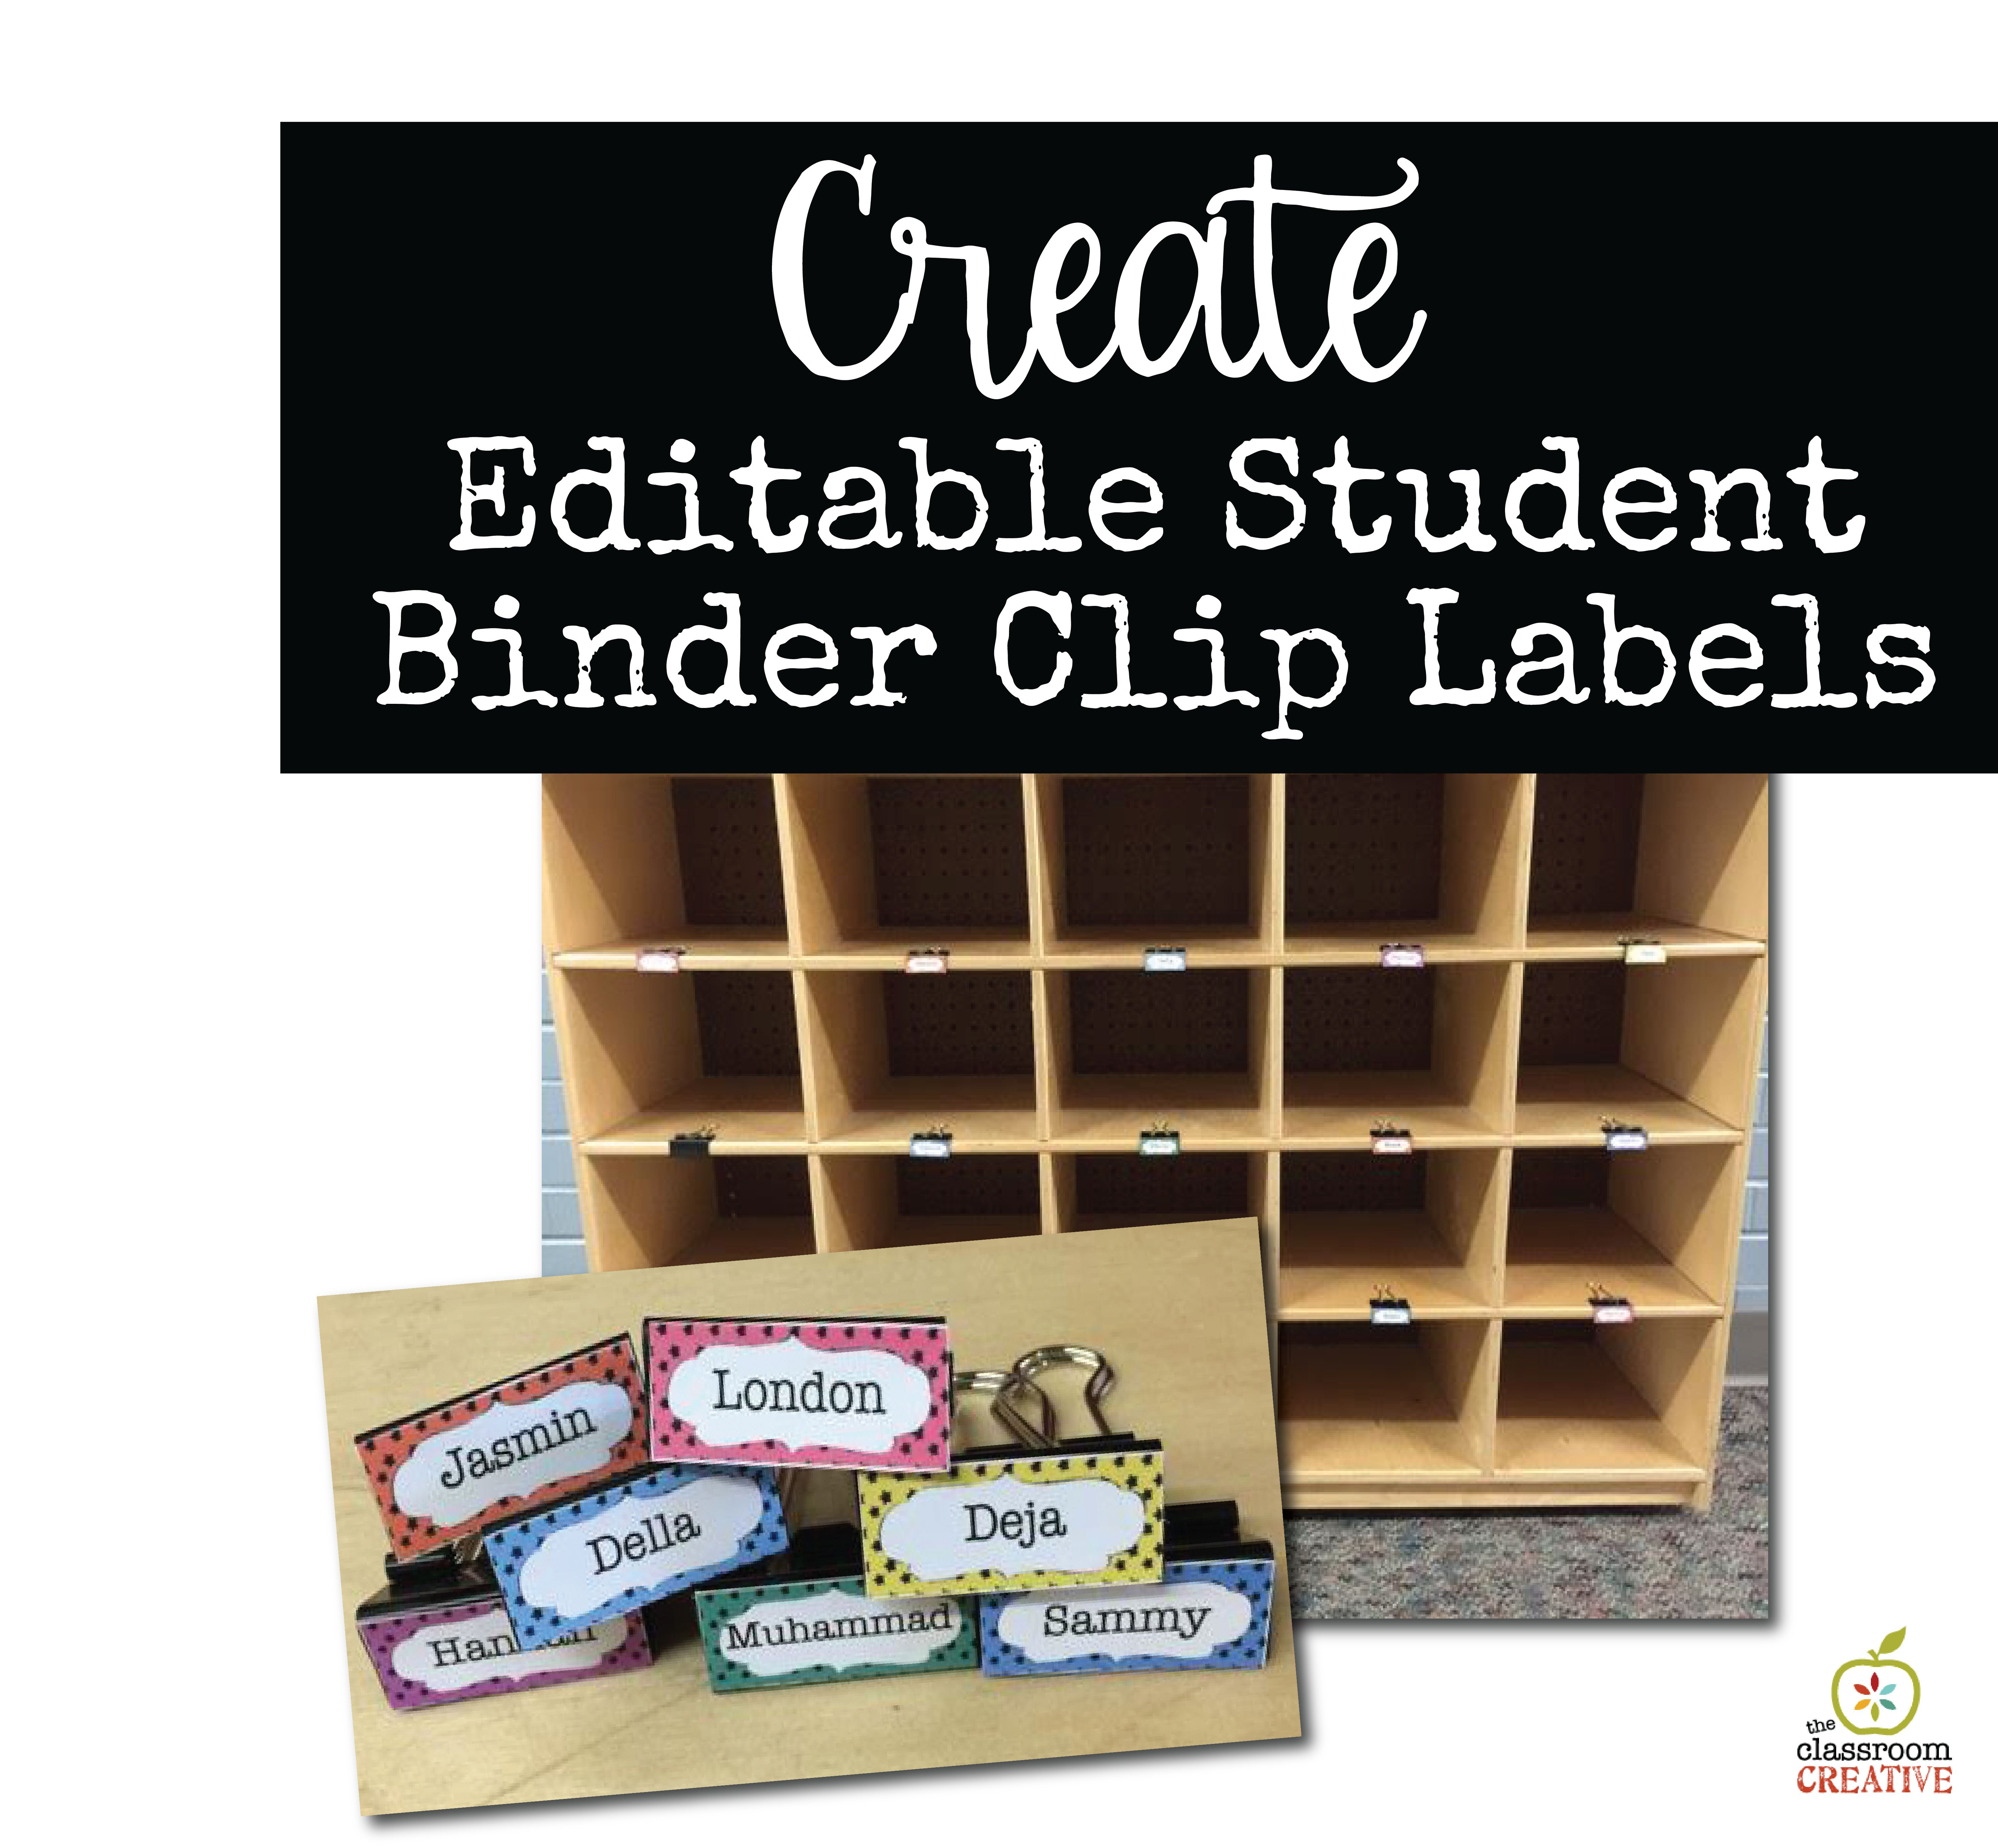 Classroom Organization Idea Editable Student Binder Clip Labels For Cubbies And Mailboxes Classroom Mailboxes Classroom Cubbies Classroom Organization